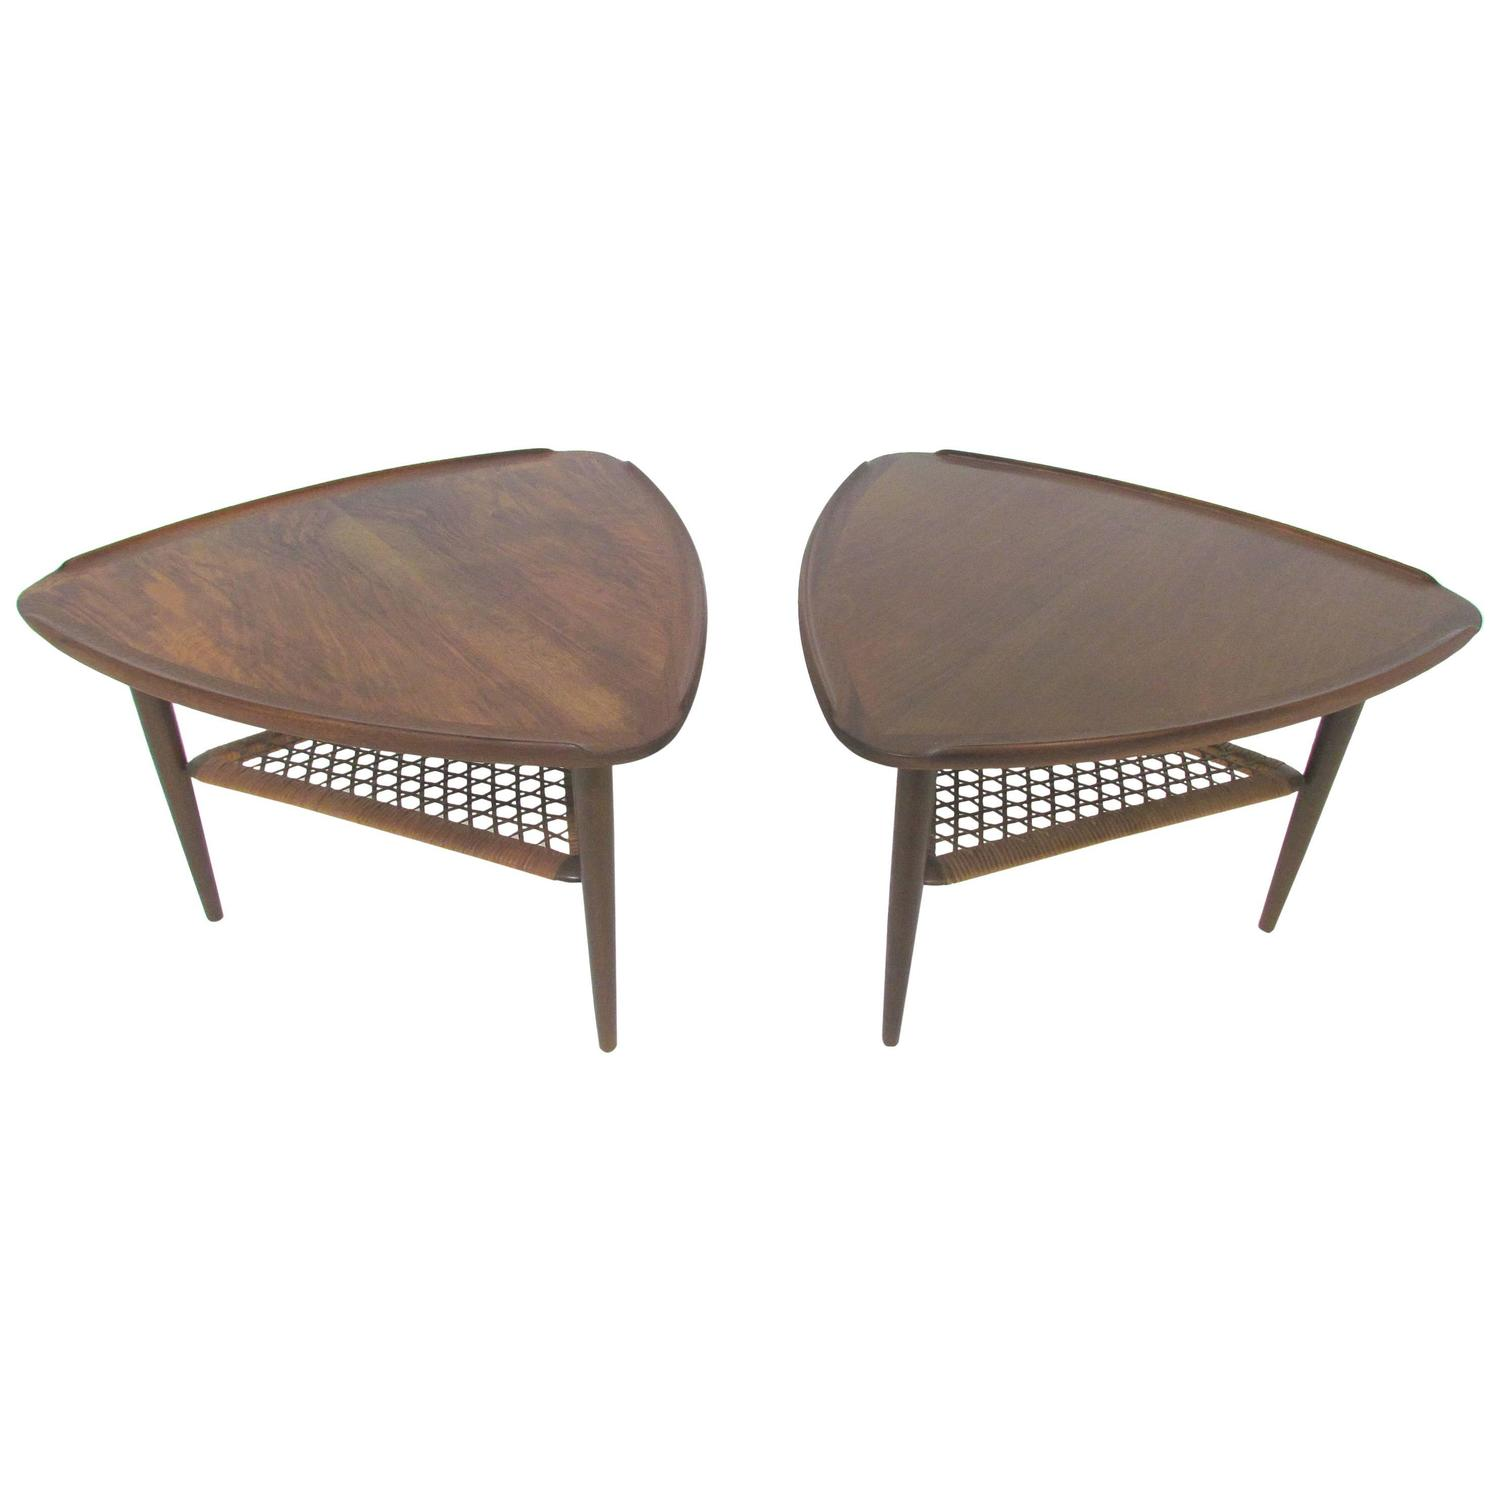 Pair of Danish Tripod Side Tables by Poul Jensen for CFC